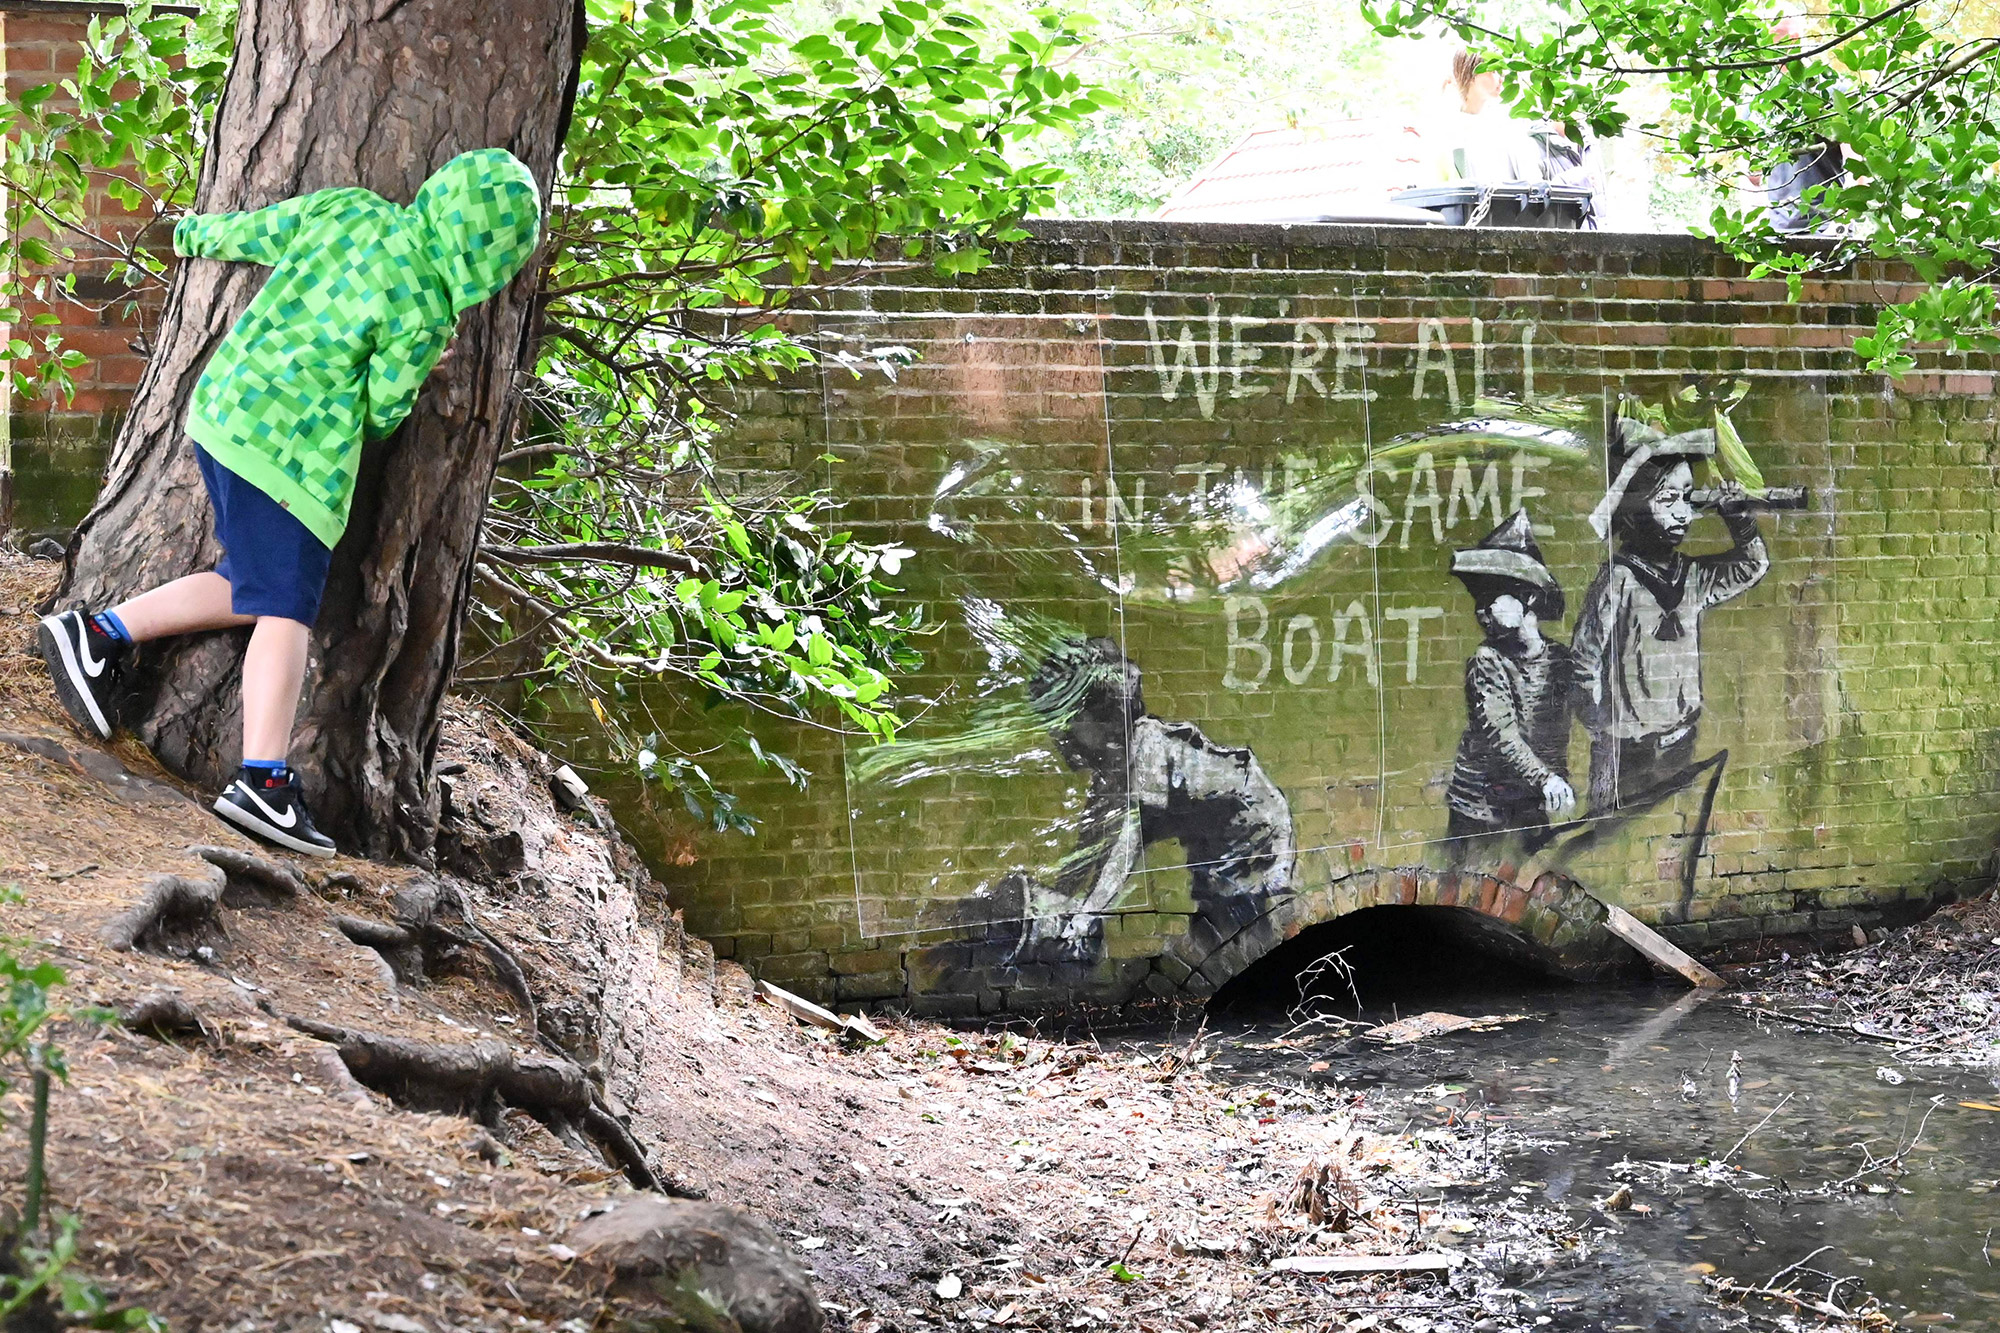 A stensil of children playing at being sailors is the subject of a graffiti artwork bearing the hallmarks of street artist Banksy on the wall of a bridge in Everitt Park in Lowestoft on the East coast of England on August 8, 2021.